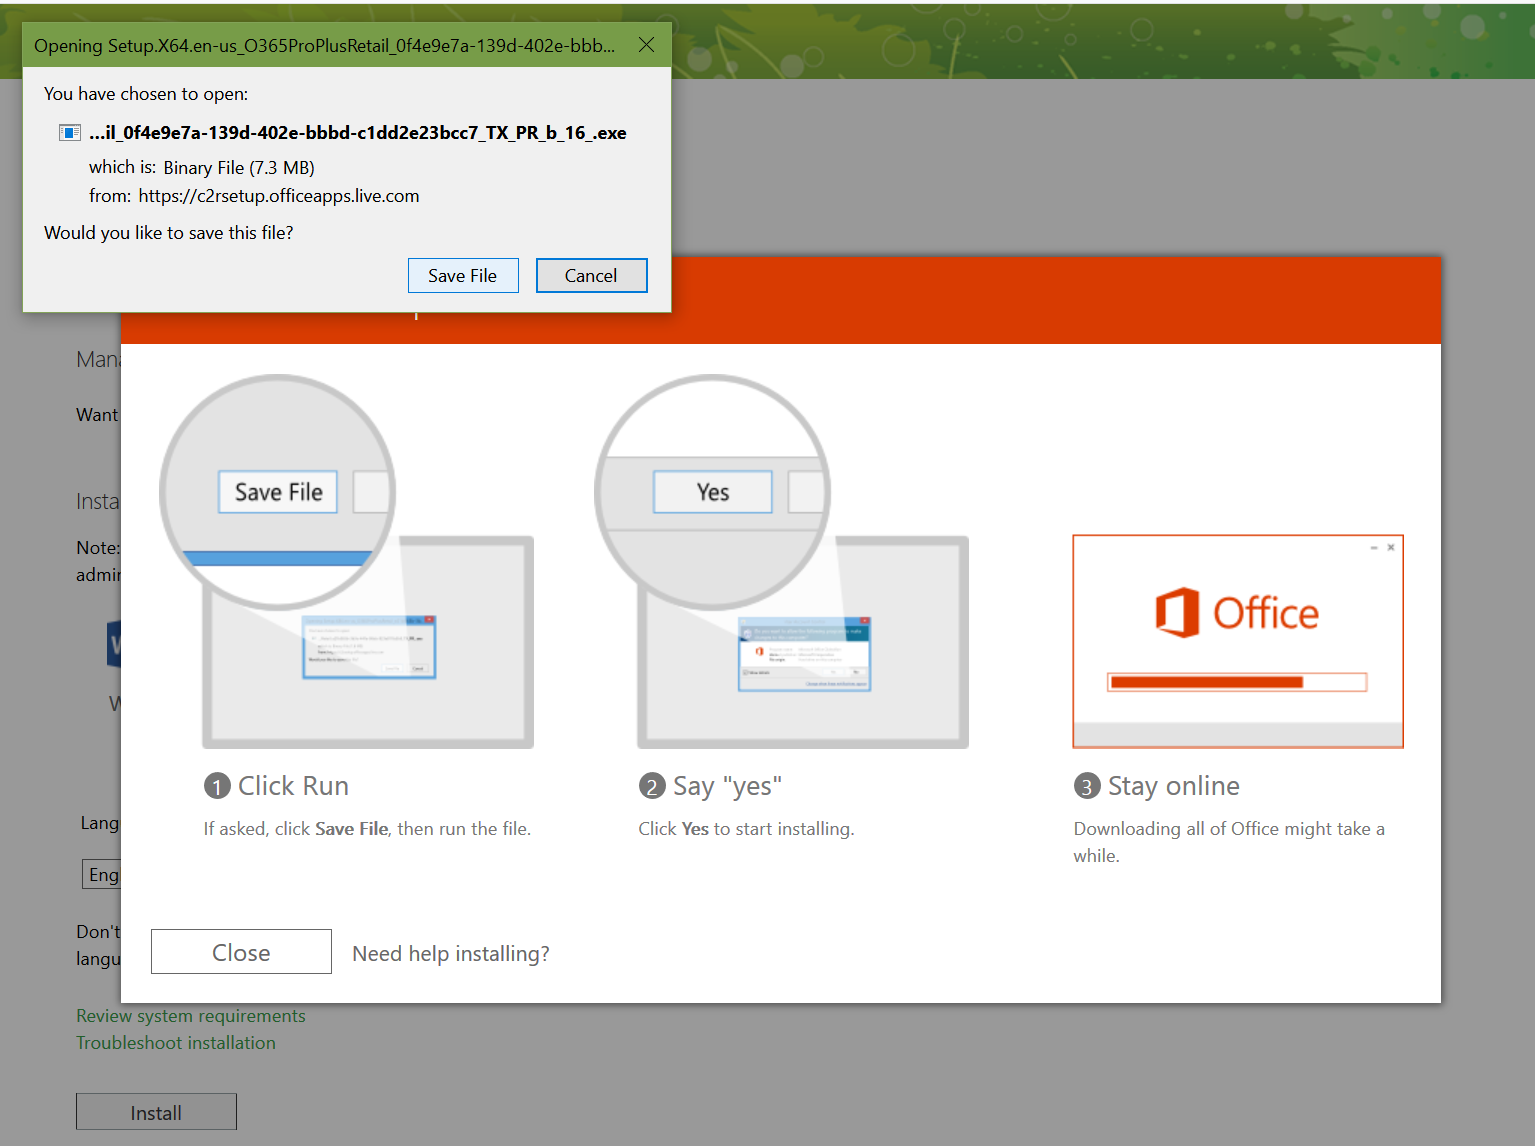 Office 365 and new Outlook simplified ribbon b7b3fabb-08ab-41ab-a031-522737c6c14a?upload=true.png